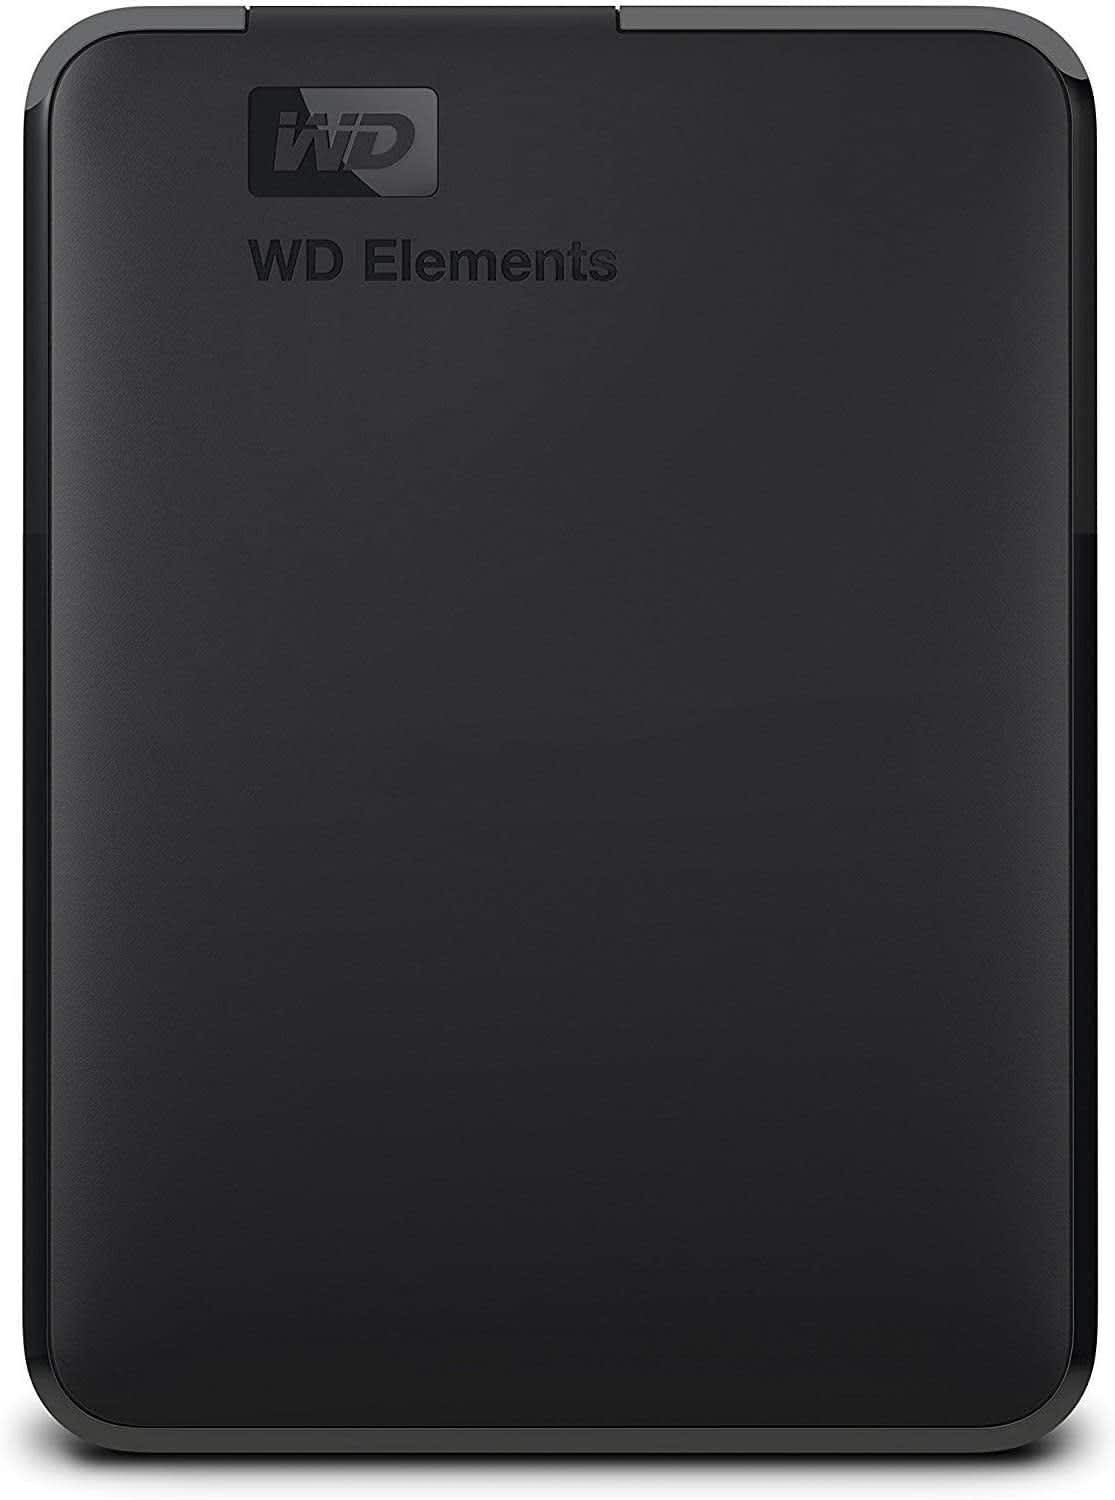 WD Elements 2TB USB 3.0 External Hard Drive